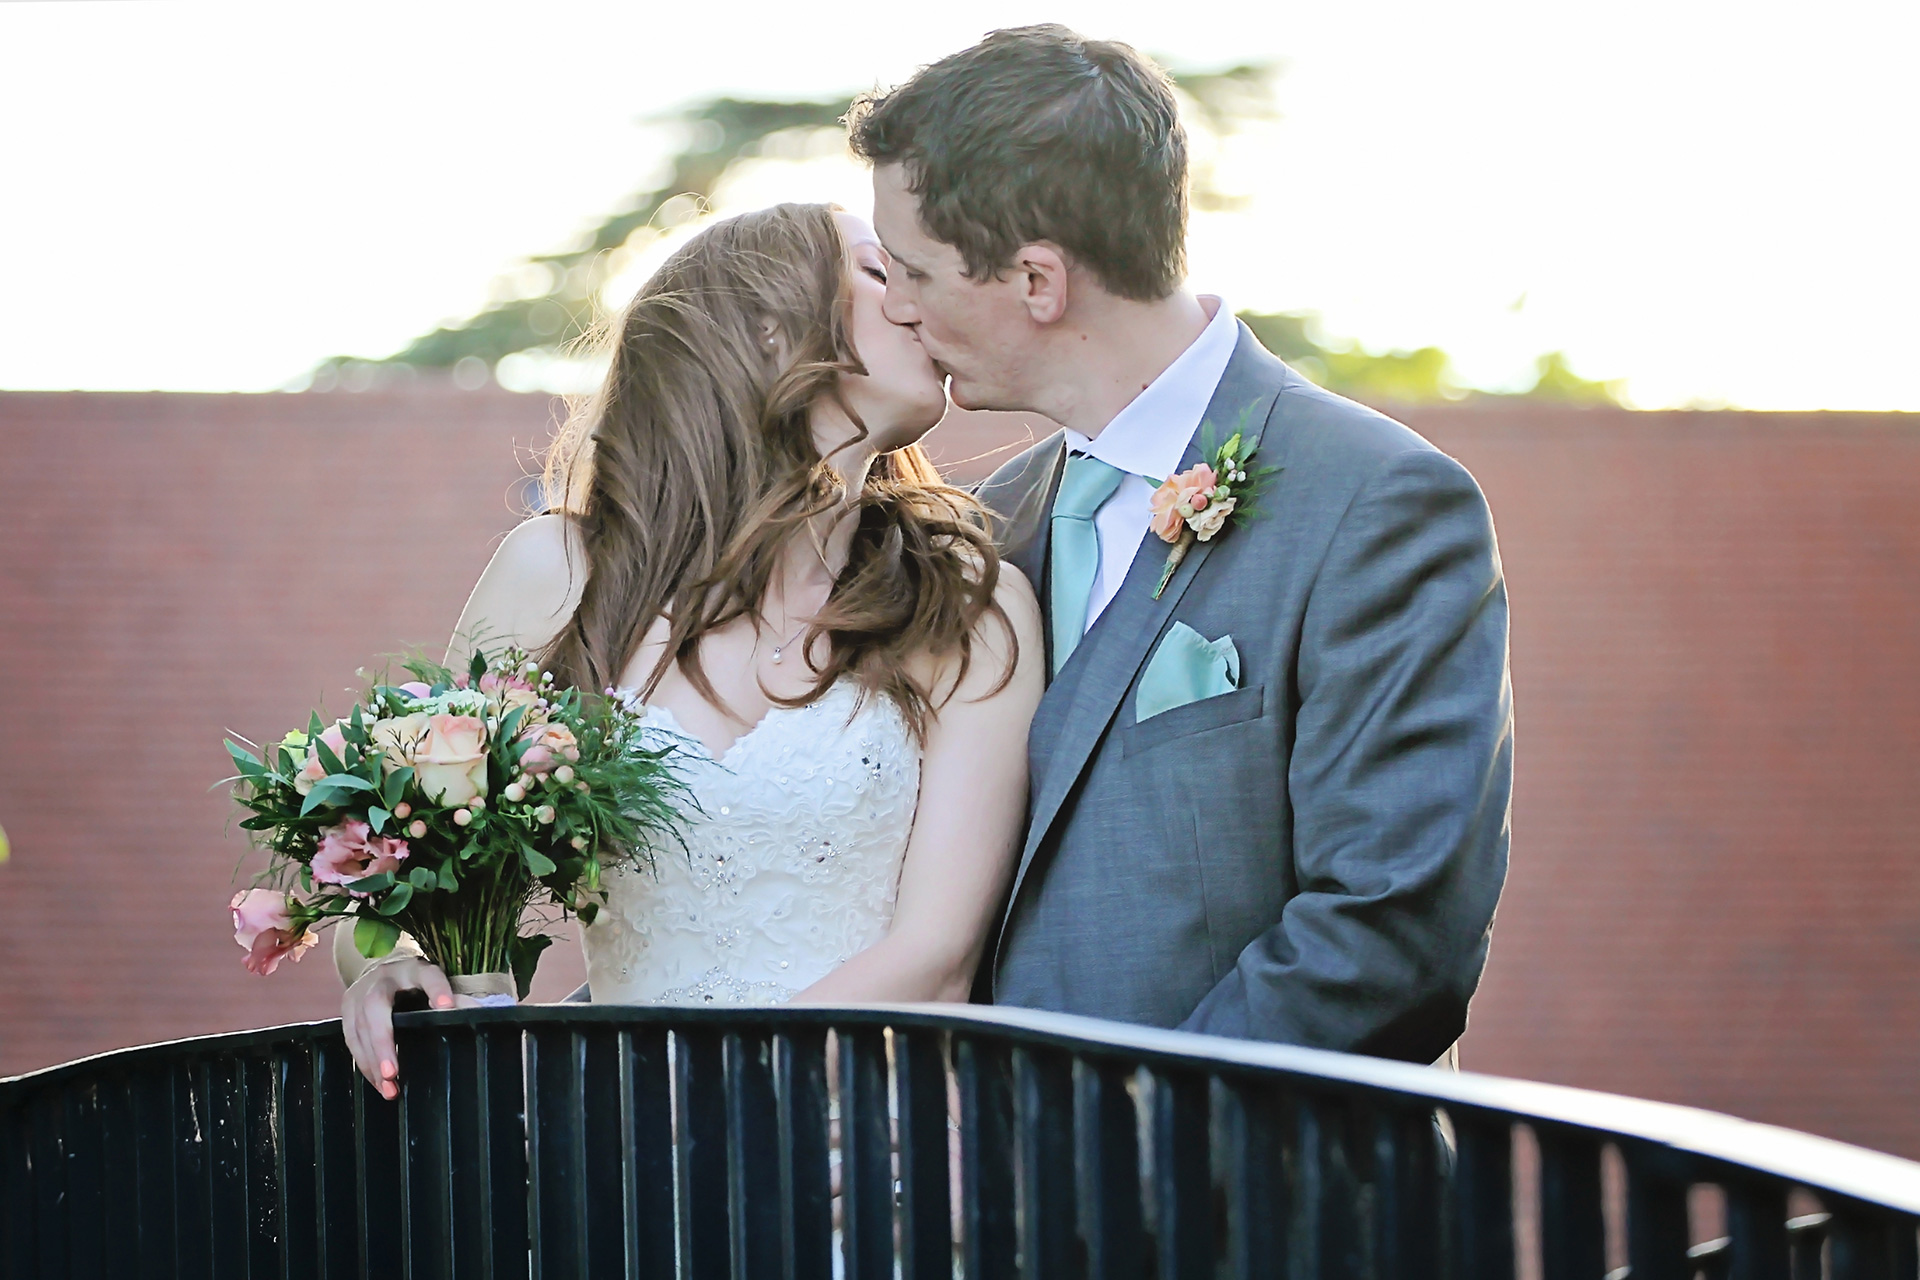 The bridge and groom share a kiss as the sun sets on their wedding day at Bassmead Manor Barns